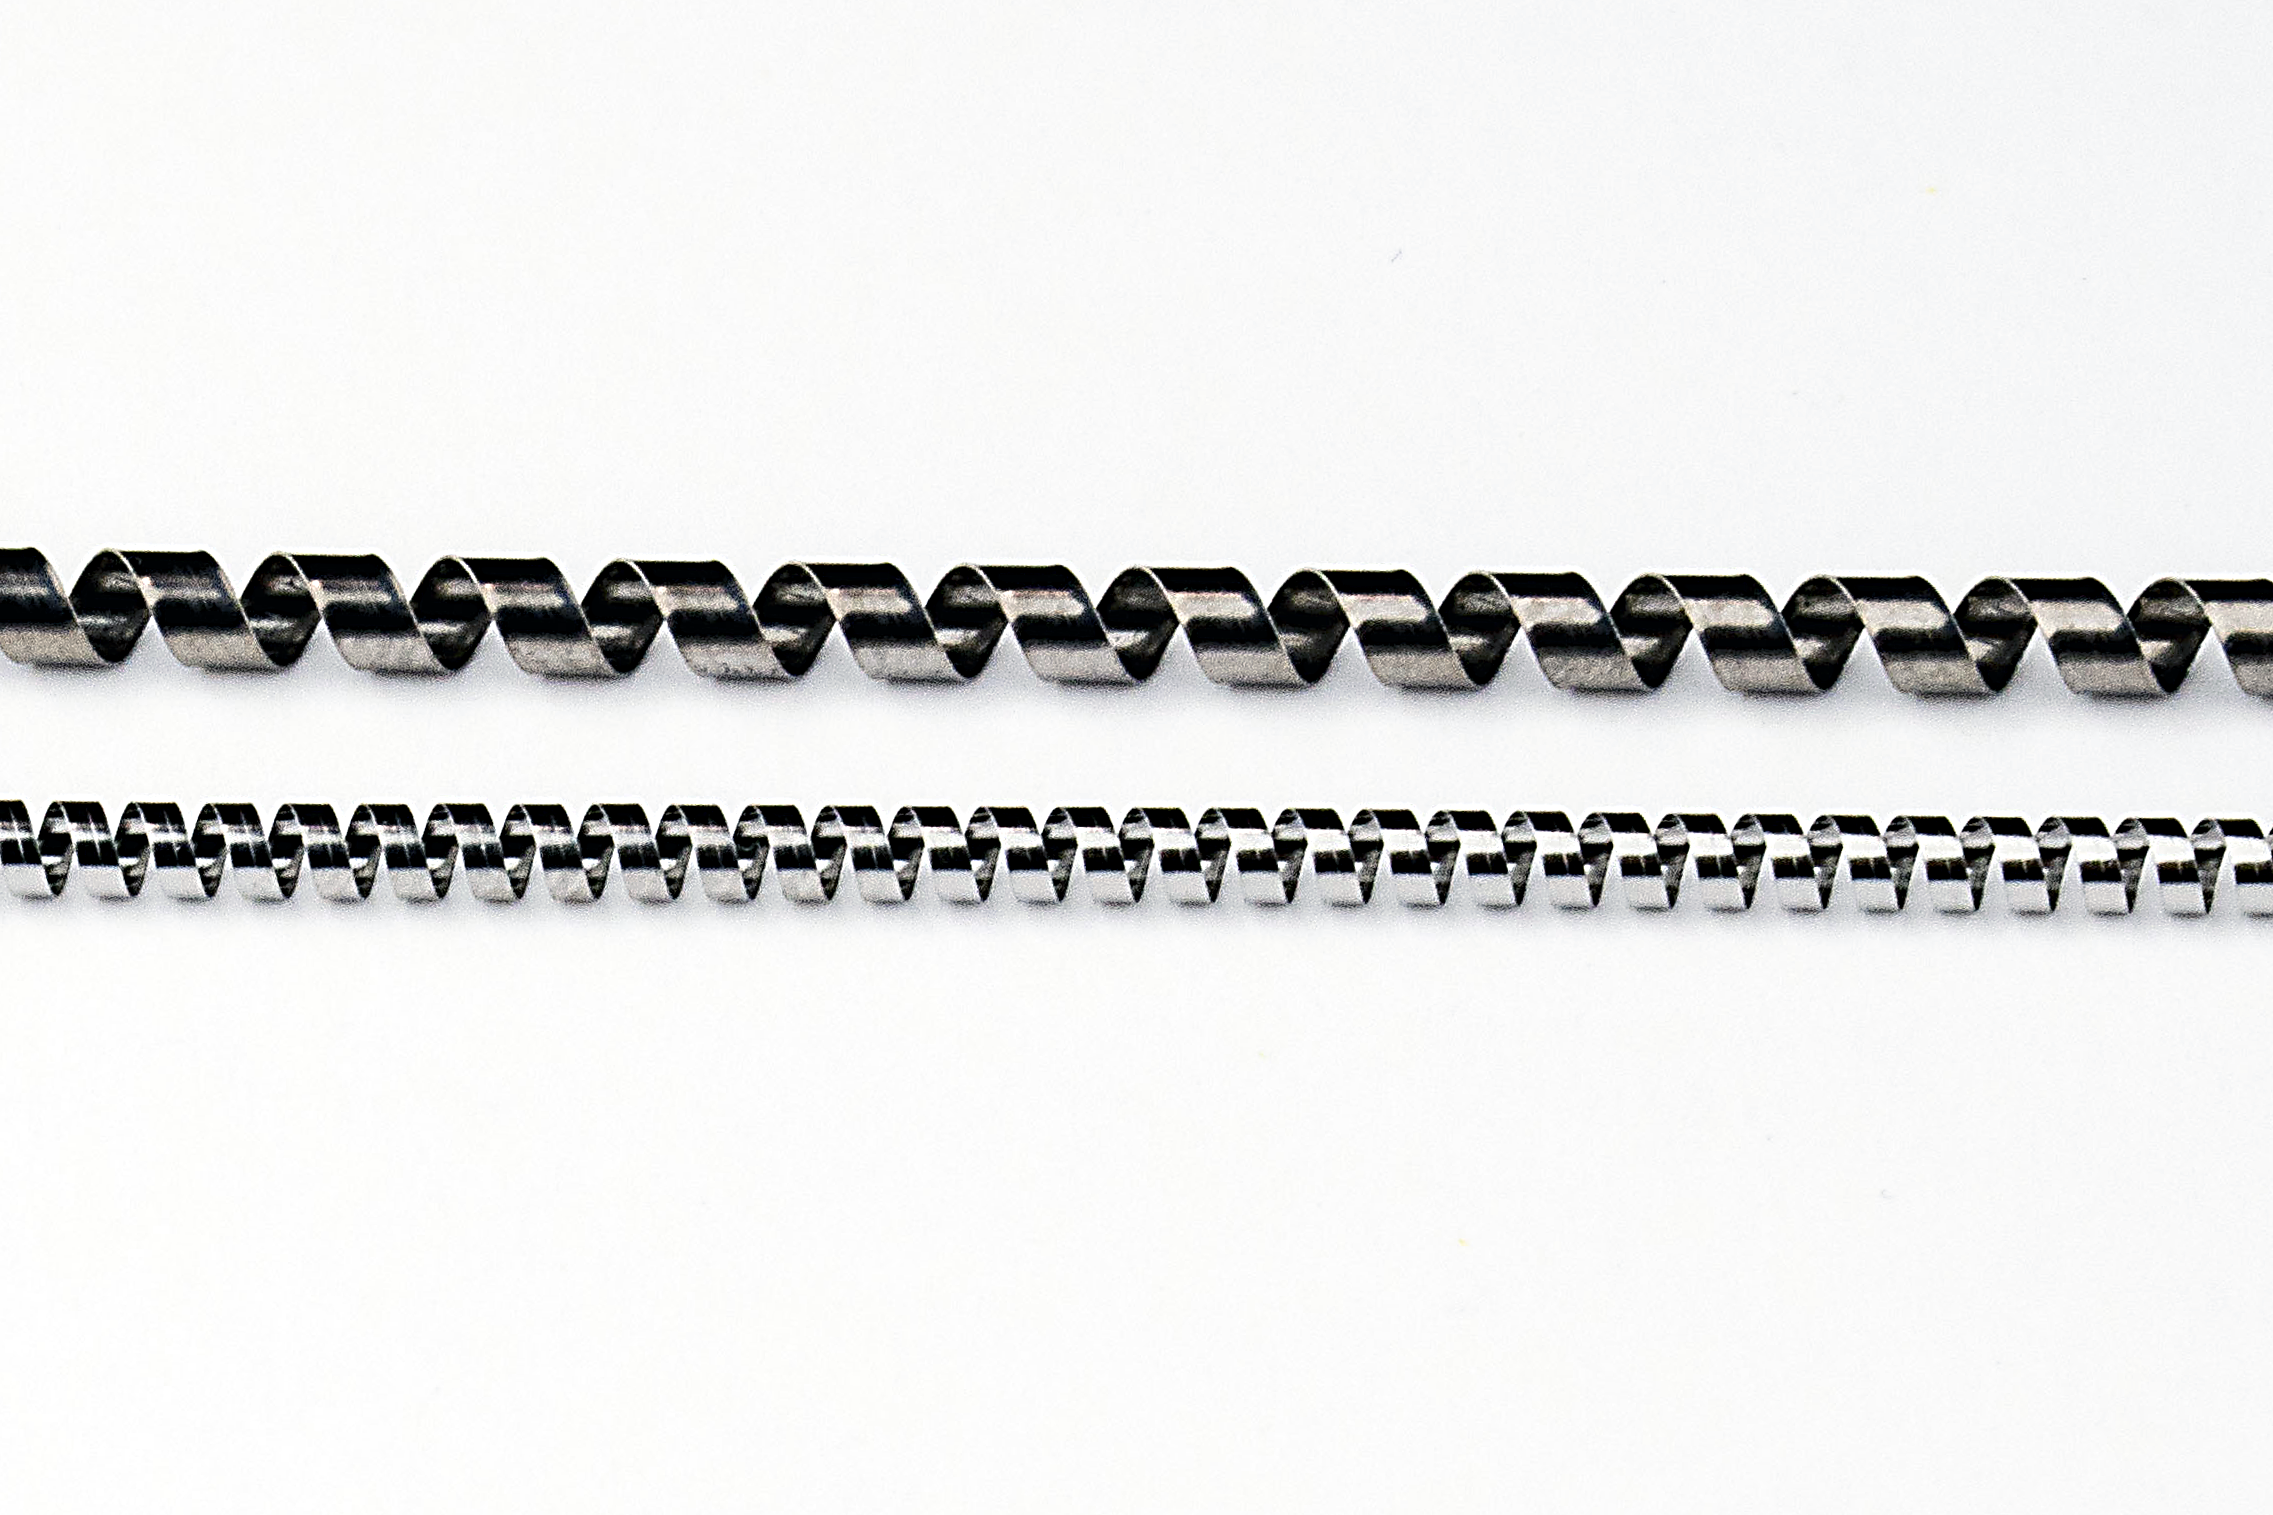 LOW LOAD ELGILOY AND TITANIUM SPRINGS FOR EMI SHIELDING